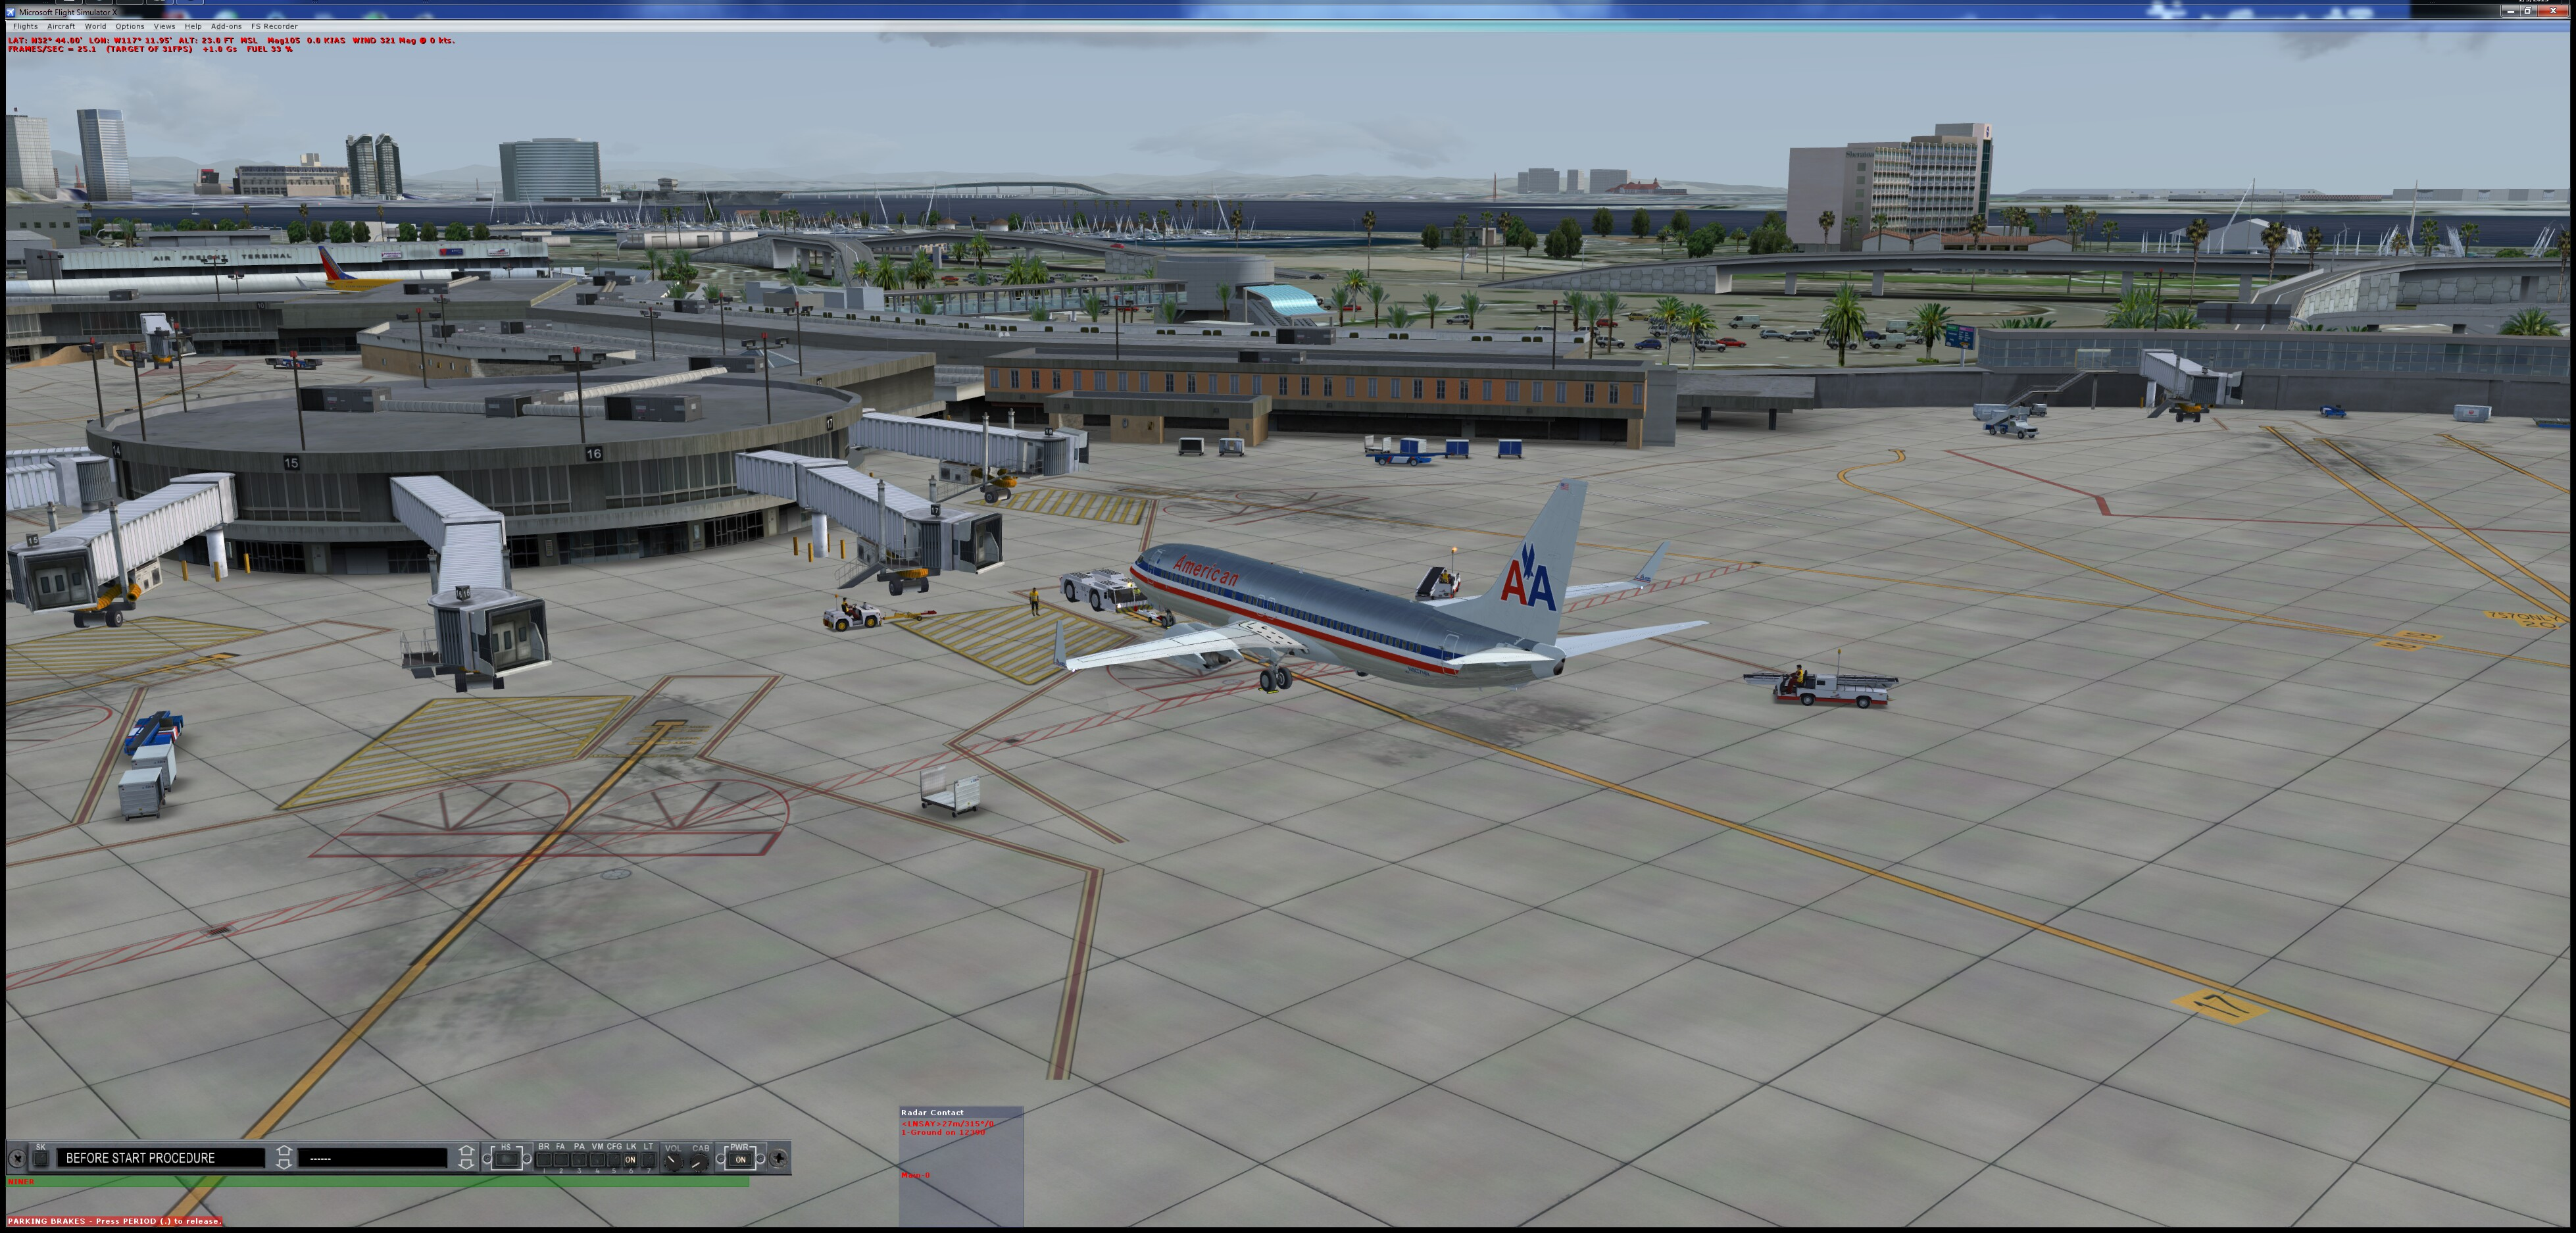 ScreenshotsKSAN-KLAX-01-04.jpg